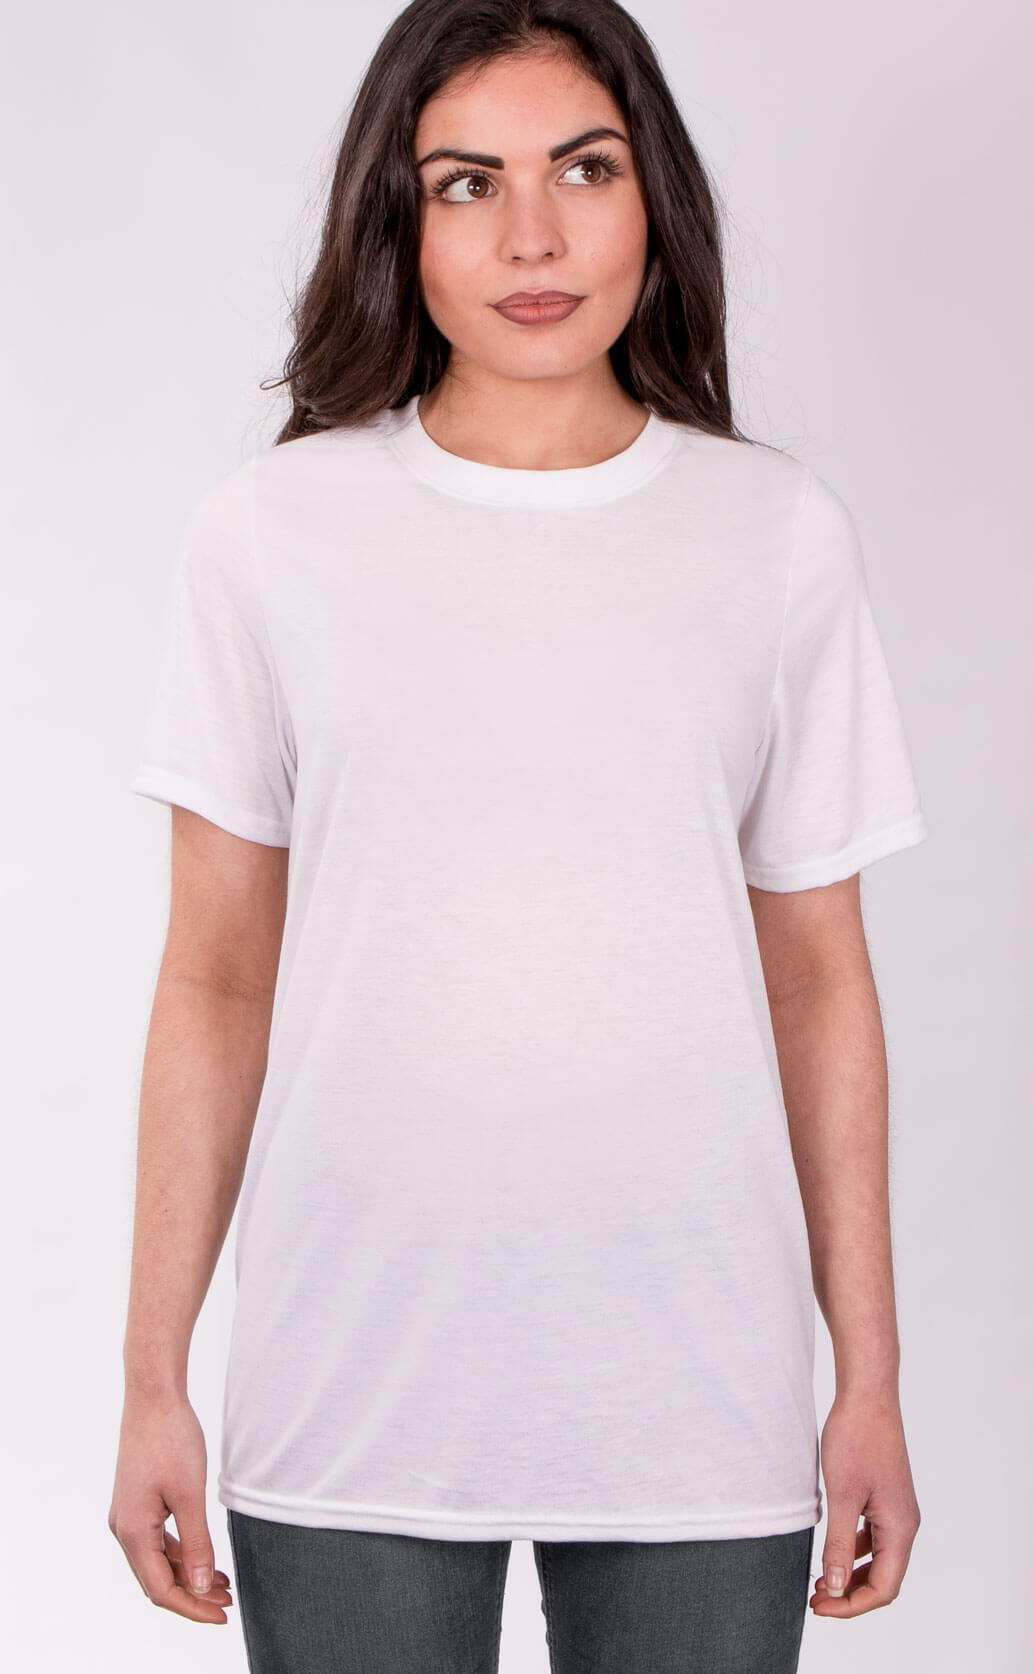 Size guide image for Unisex Sub shirt type. Model is dressed in white t shirt and dark jeans